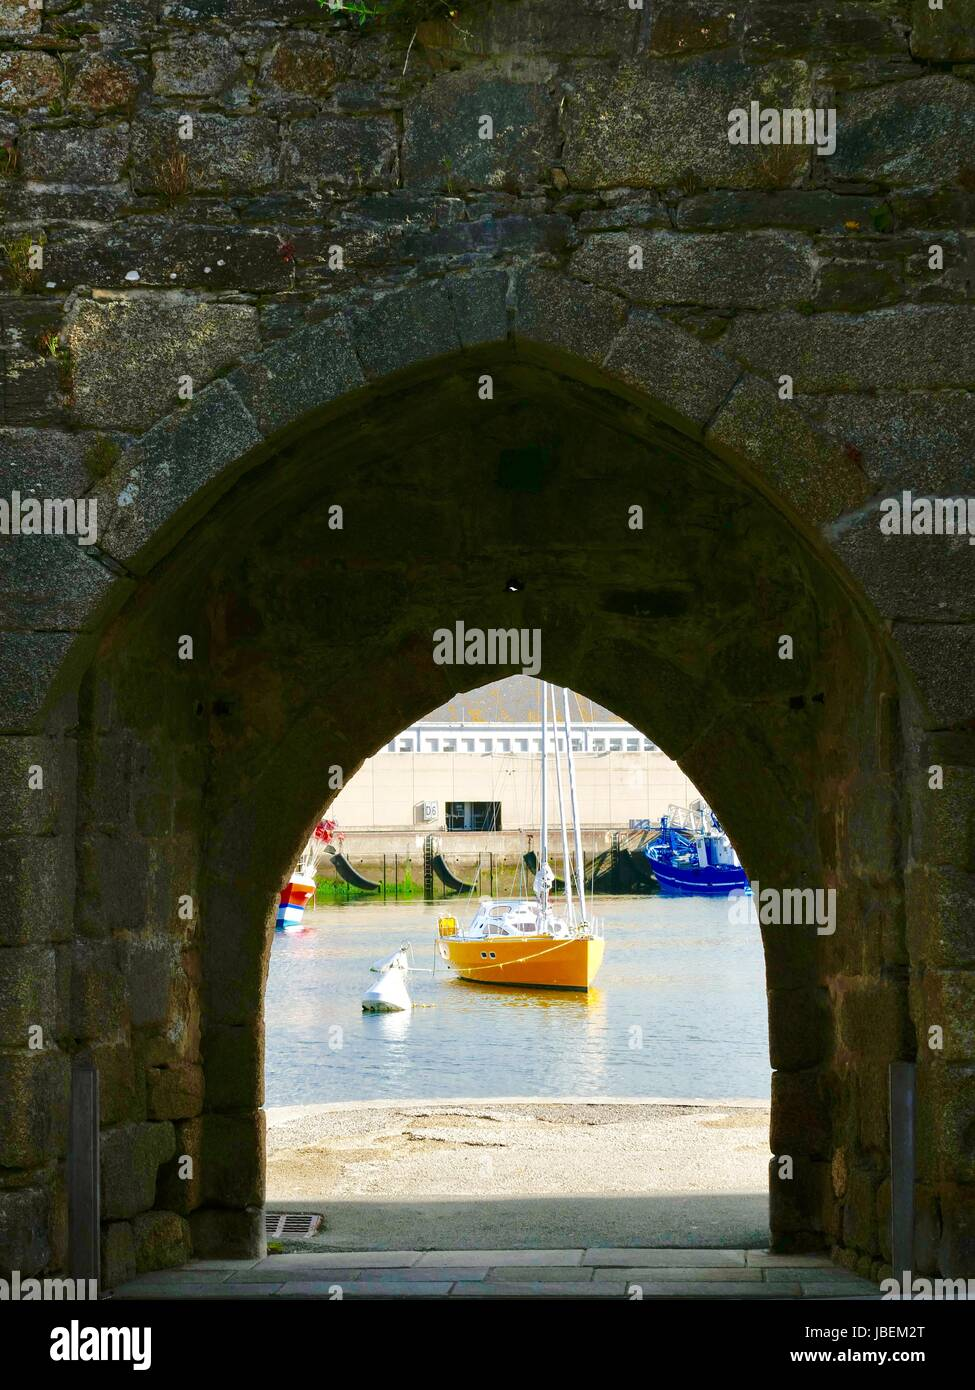 Sailboat with bright, yellow hull as seen through an arch in the medieval wall known as the wine gate, La Porte - Stock Image